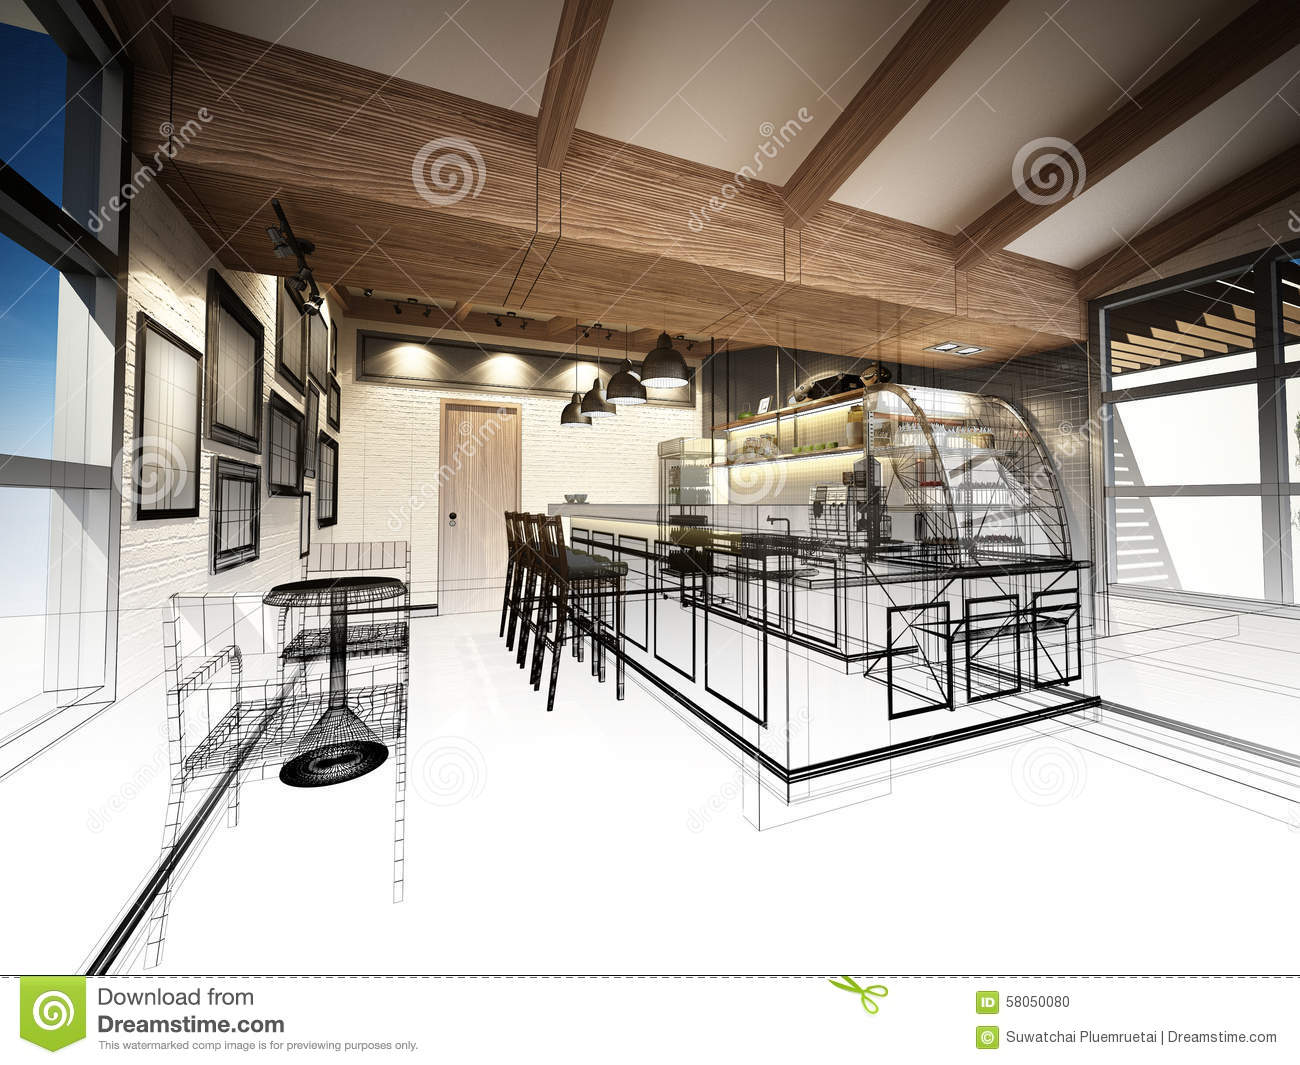 Sketch Design Of Coffee Shop Stock Photo - Image 58050080